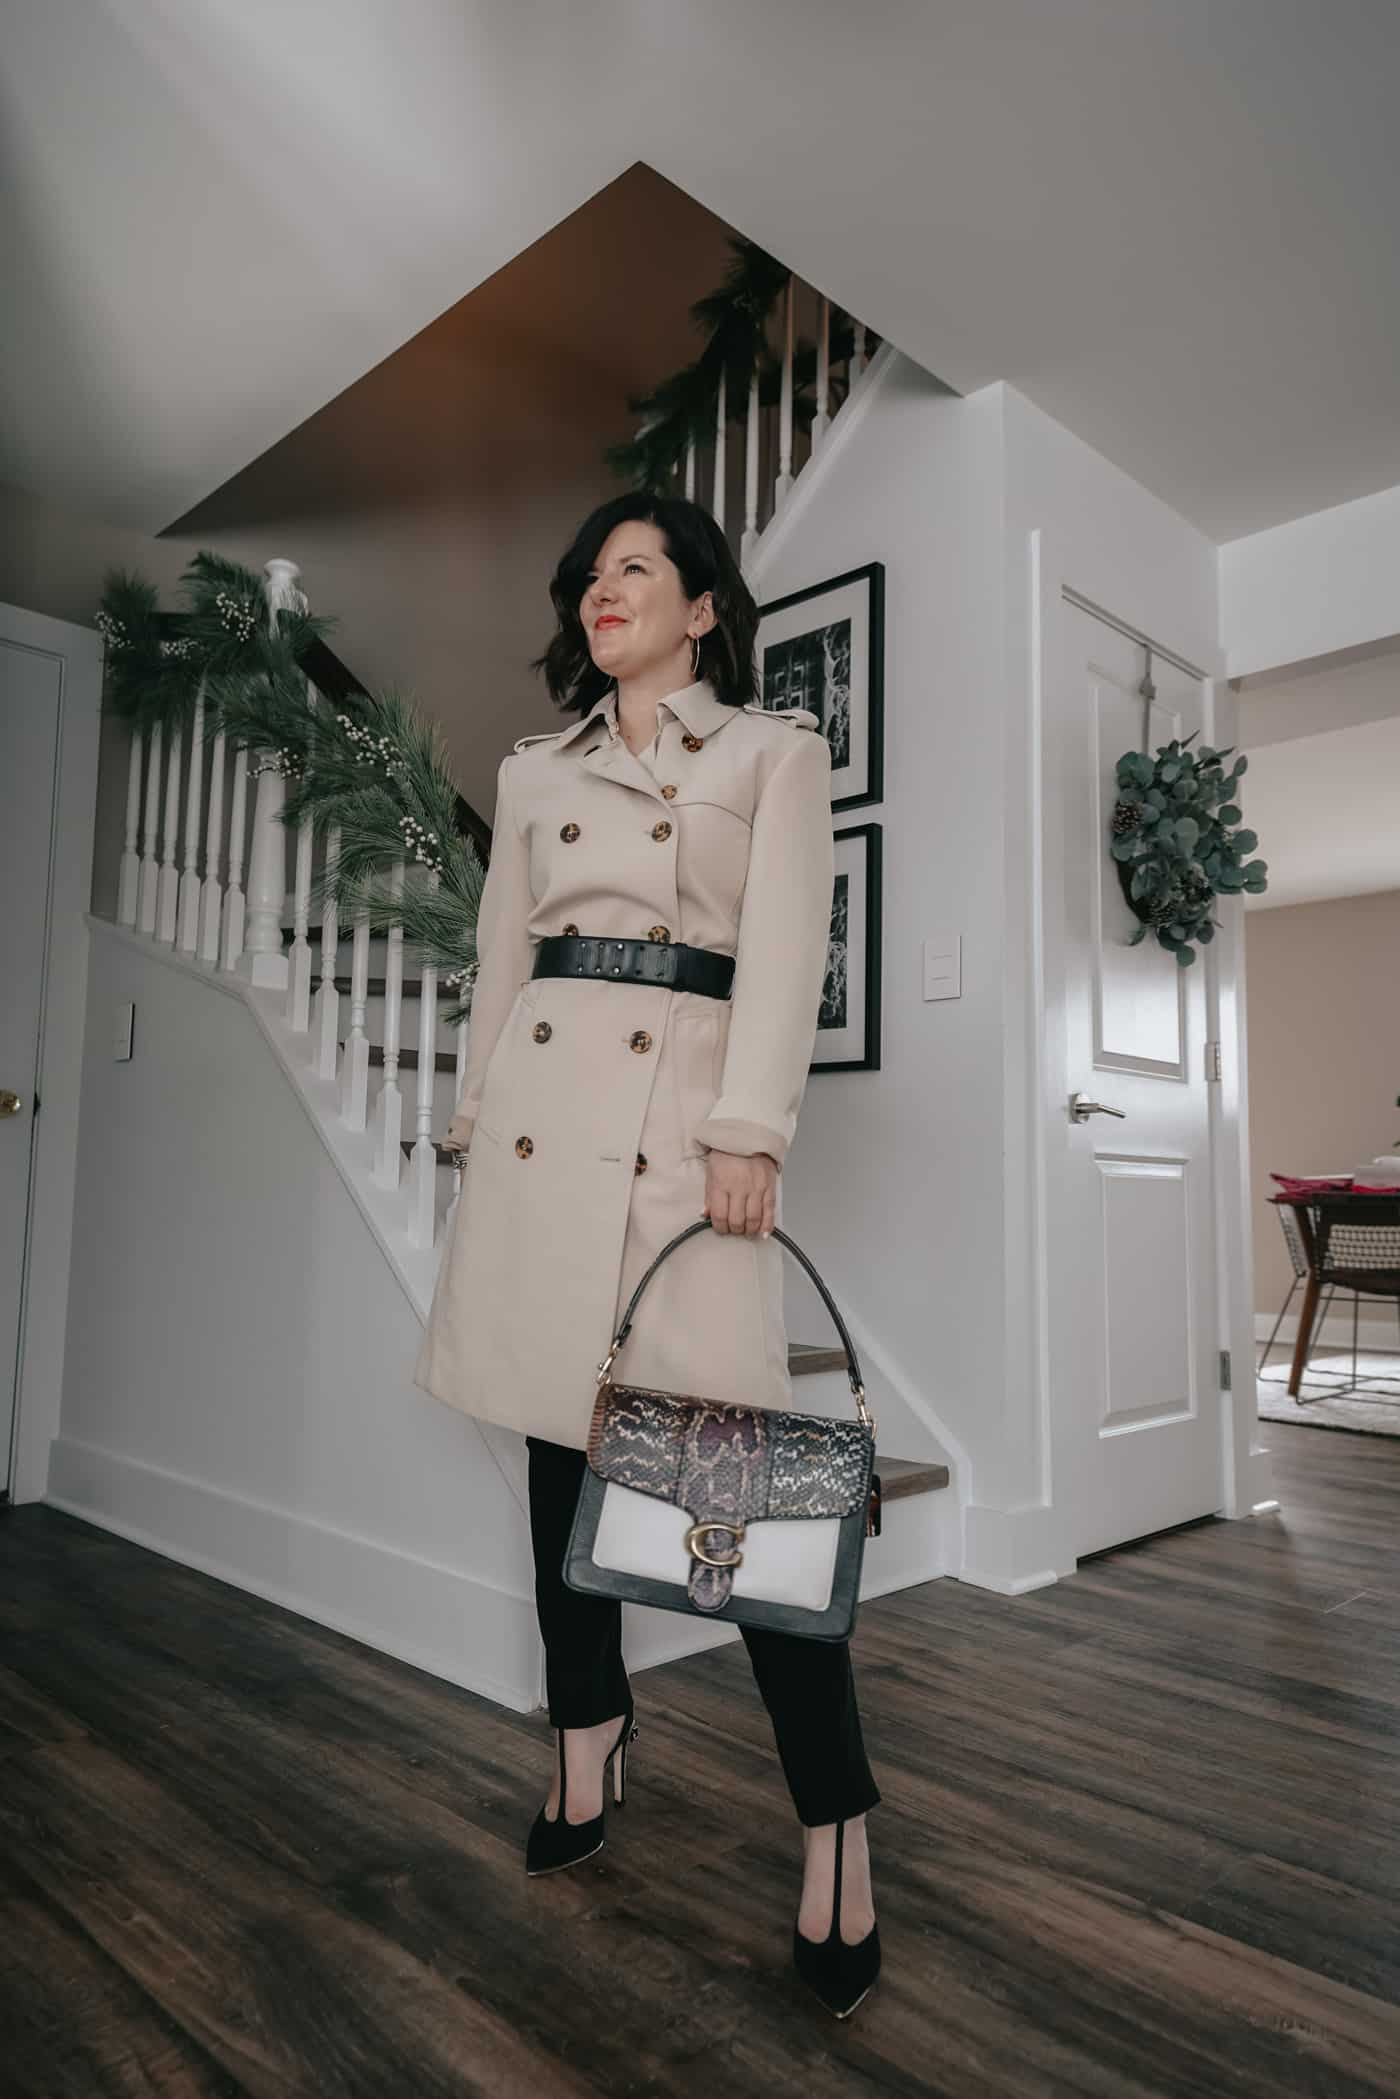 A Lily Love Affair showing you 5 ways to wear womens black pants outfit. Wearing a tan trench coat, coach bag, petite trench coats,, work outfit, petite black pants, fall outfit ideas, what to wear to work, black pants to work, what to wear to work